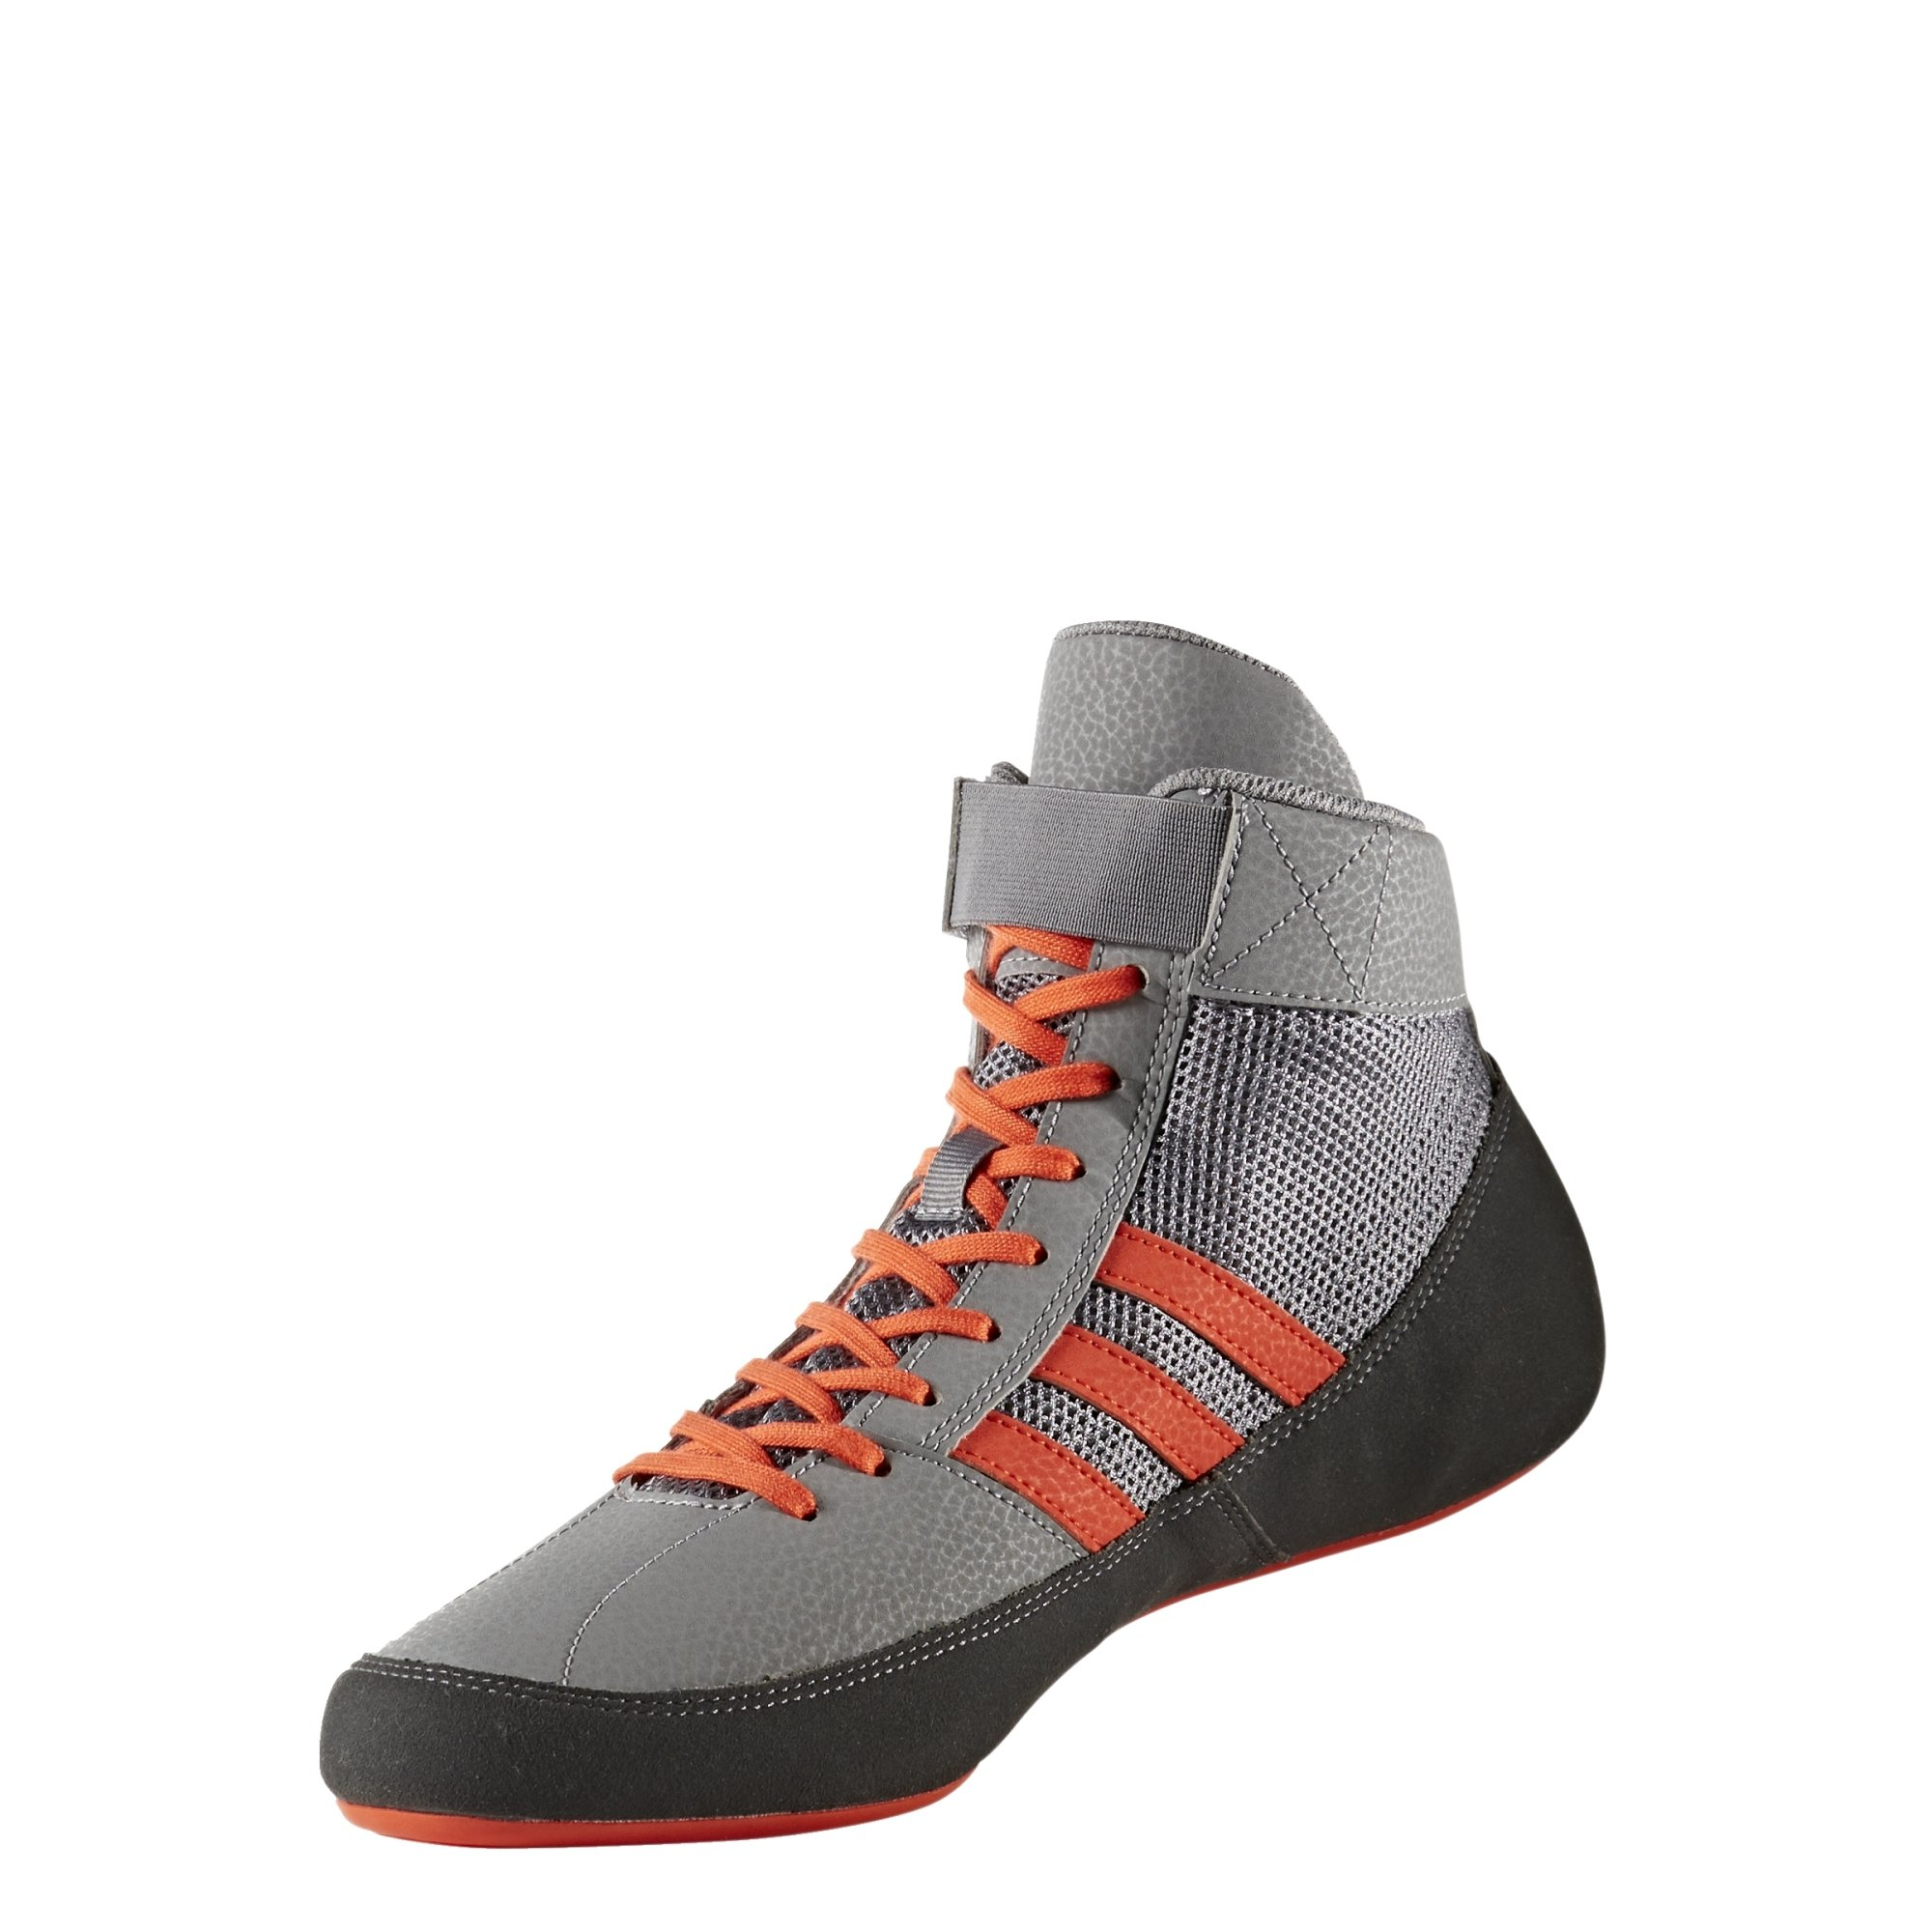 adidas HVC 2 Mens Wrestling Shoes, Grey/Solar Red/Grey, Size 11 by adidas